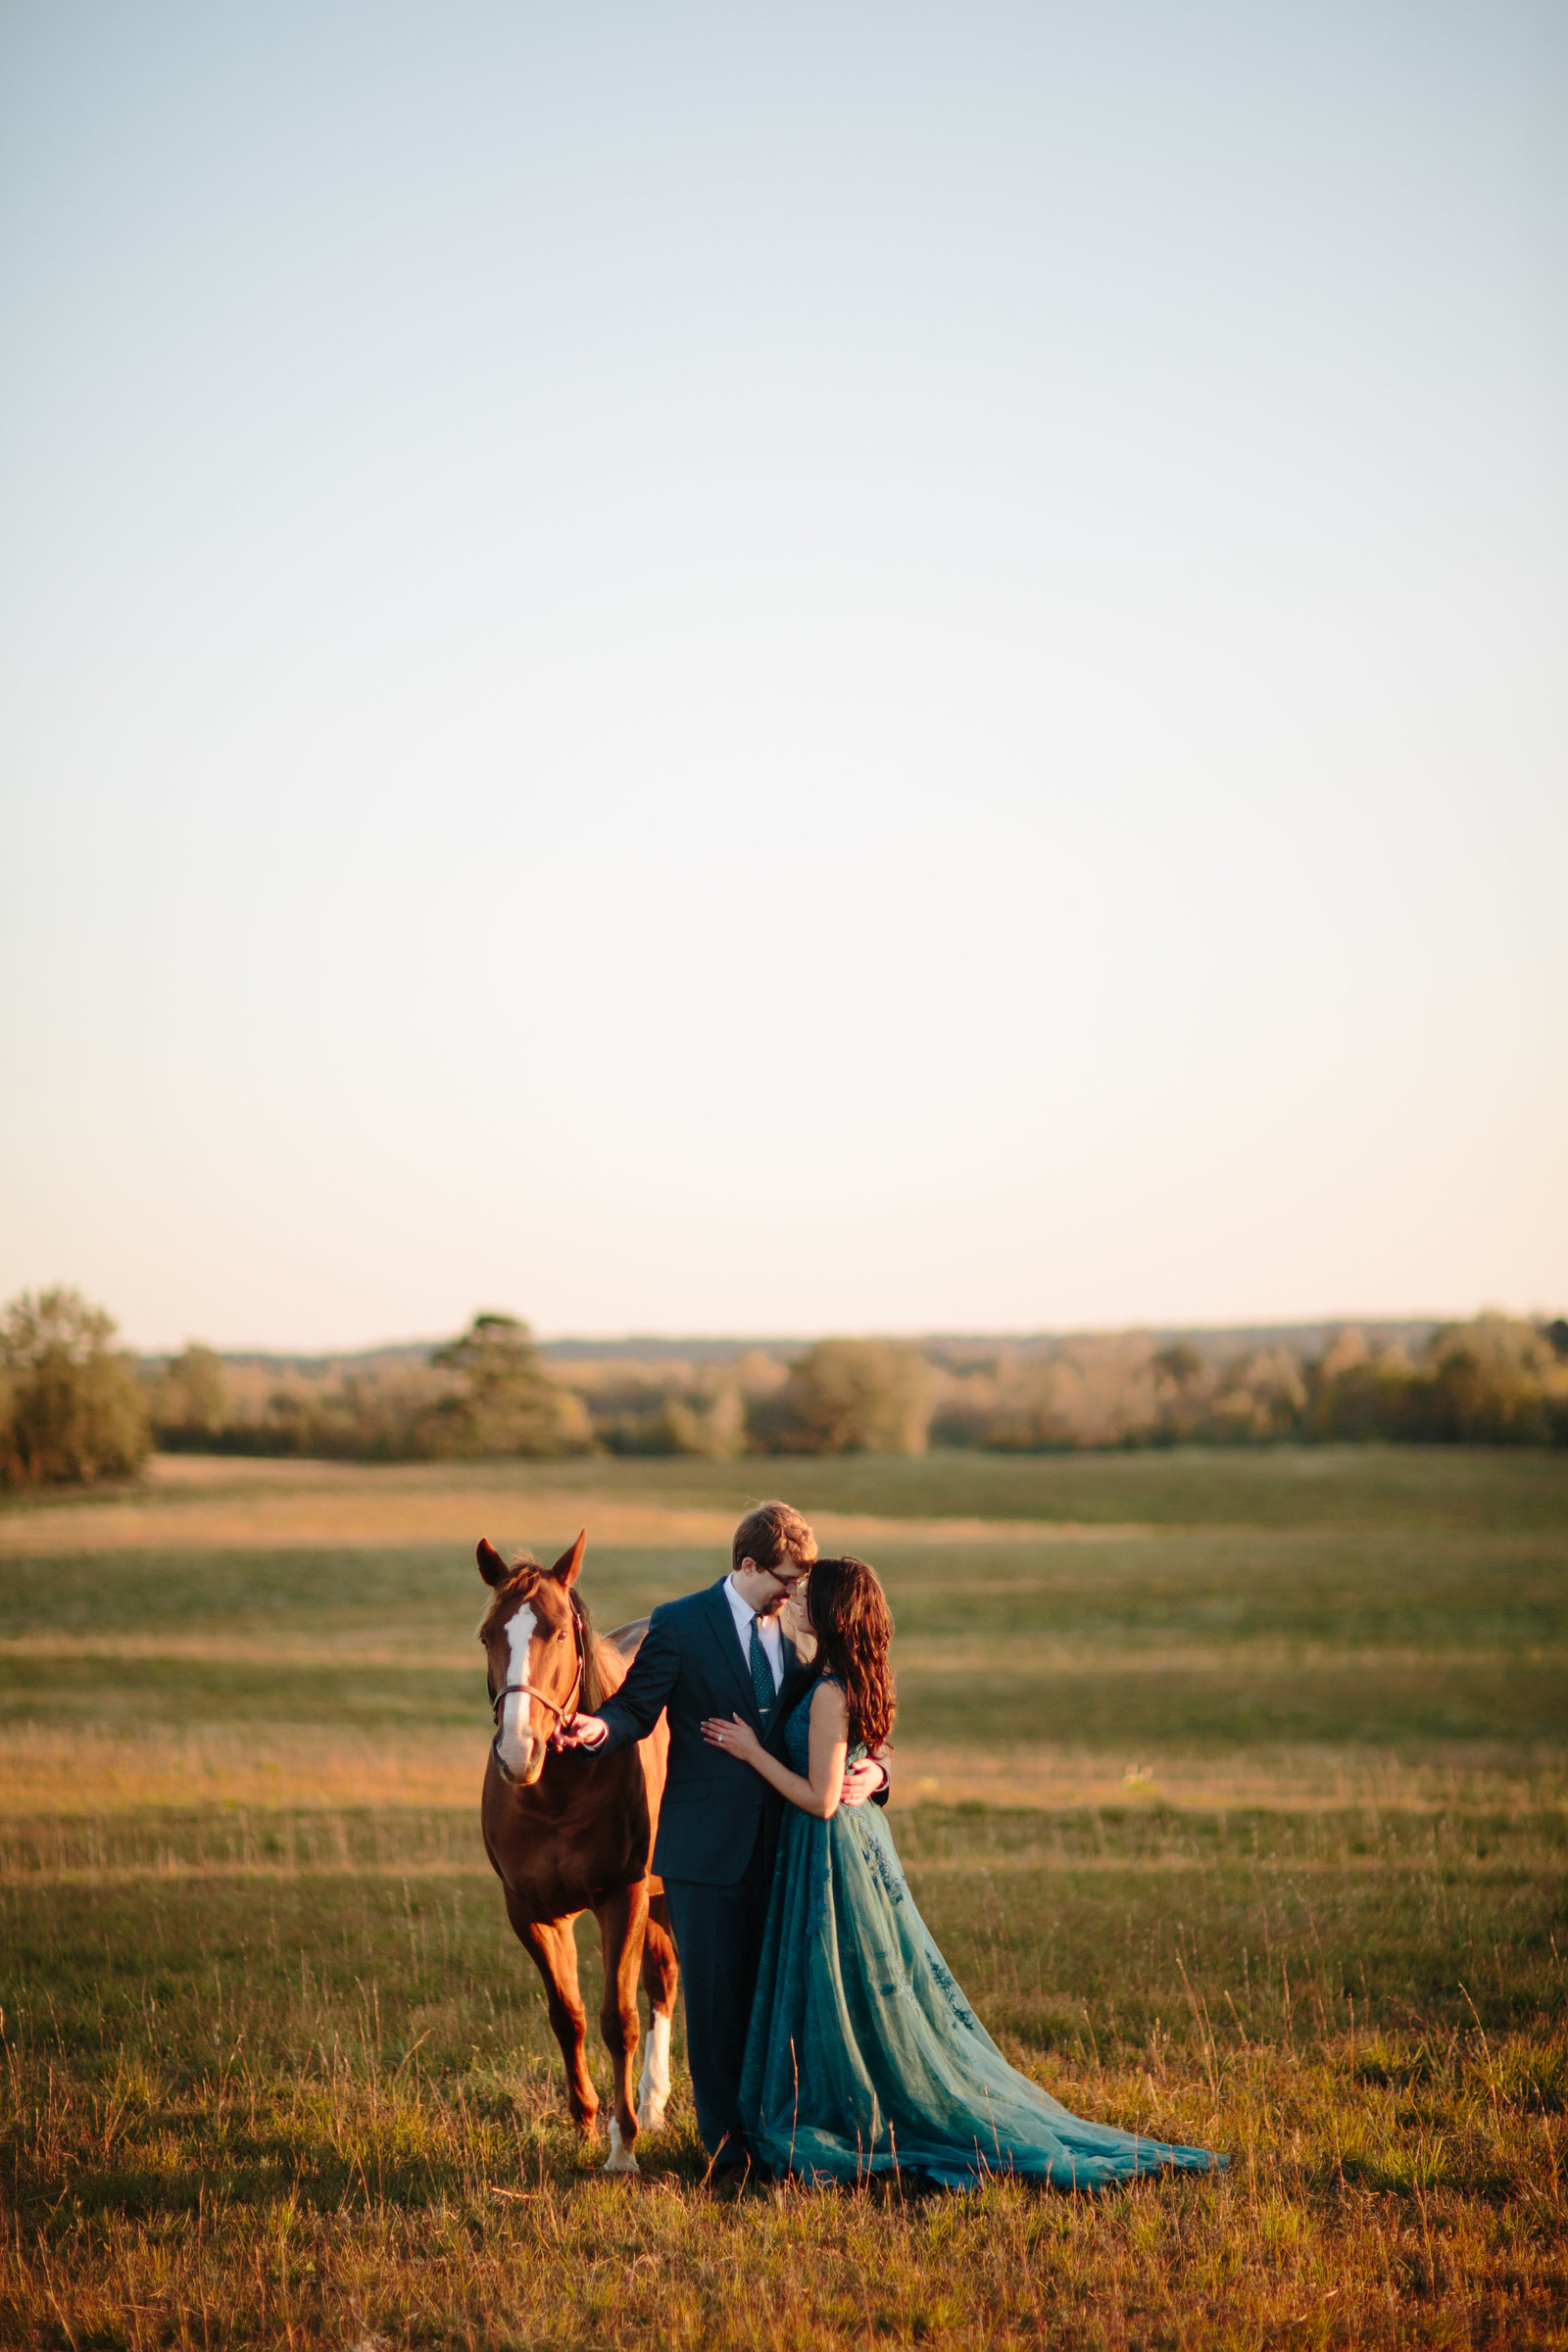 Genuine Wedding Photography for Joyful Couples